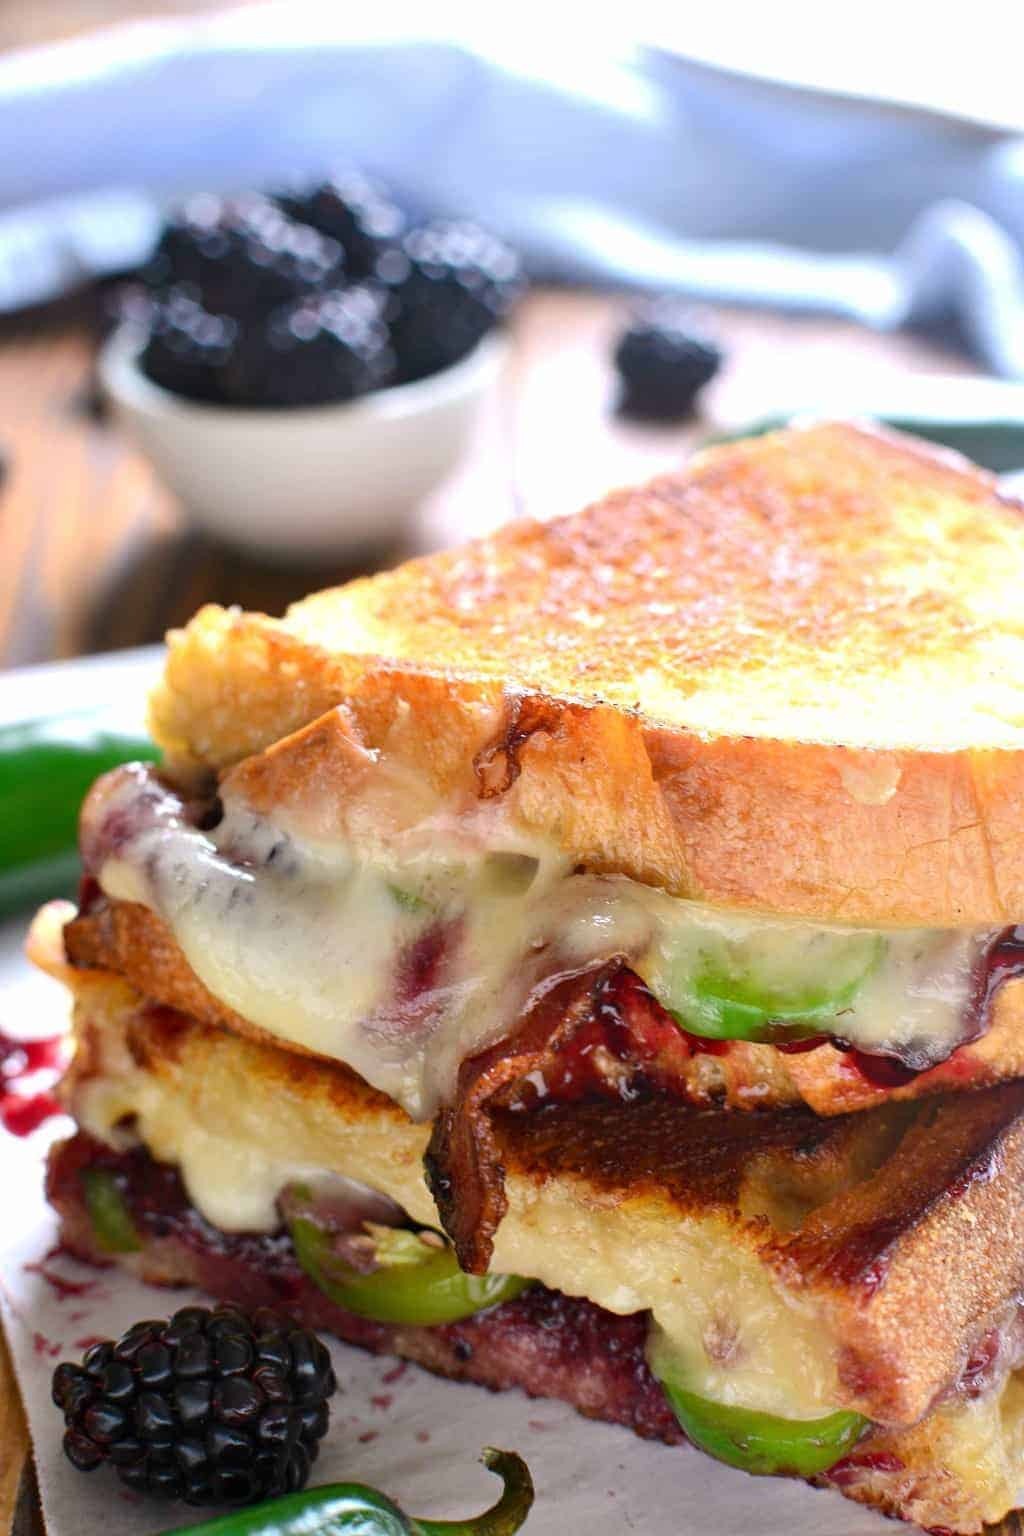 close up image of a grilled cheese sandwich on white bread with crisp bacon, jalapenos, and blackberry jam added to it.